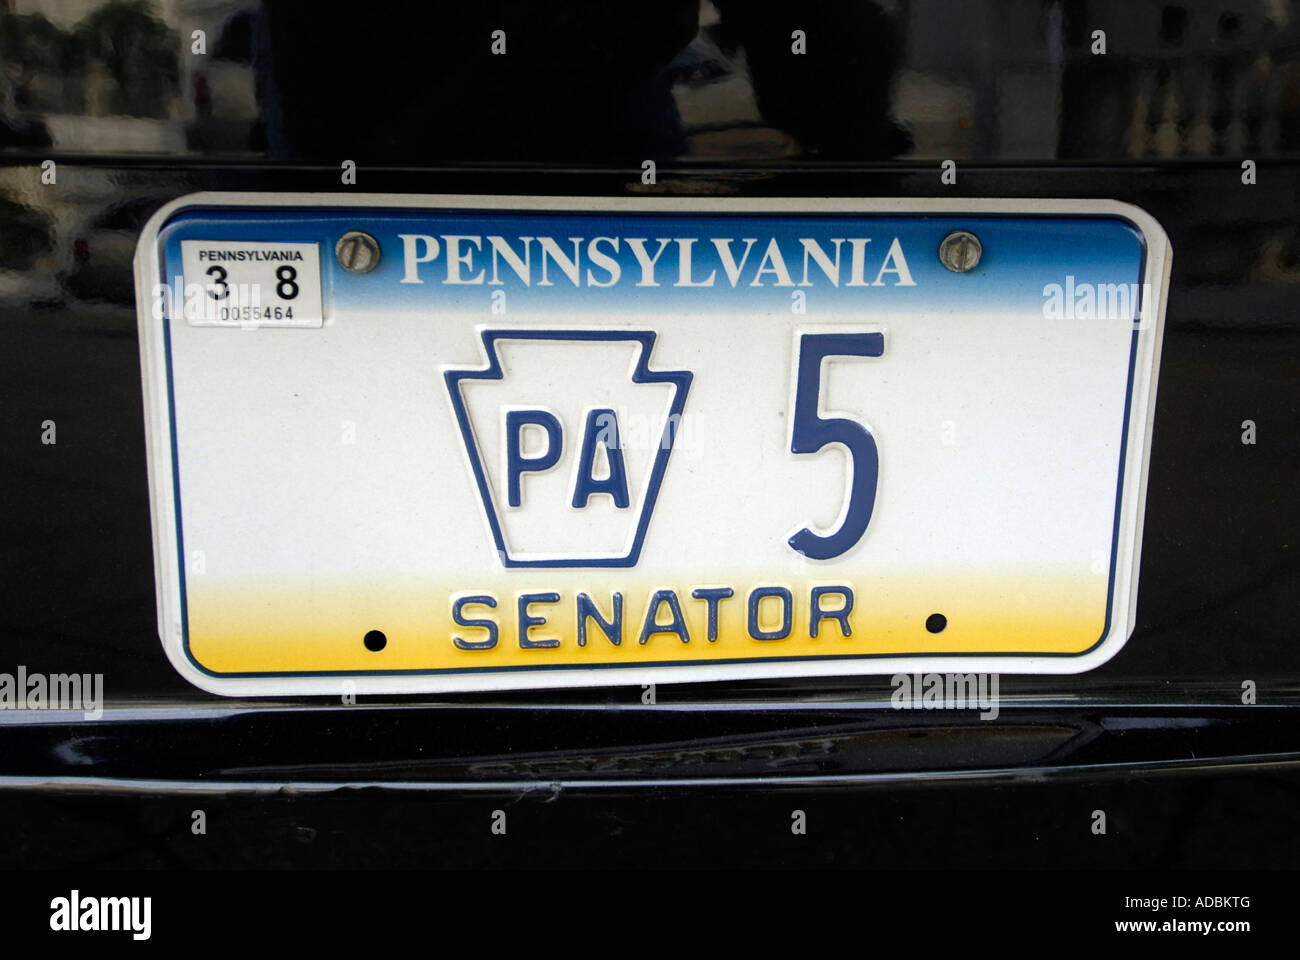 Car Auto License Plate Tag Stockfotos & Car Auto License Plate Tag ...